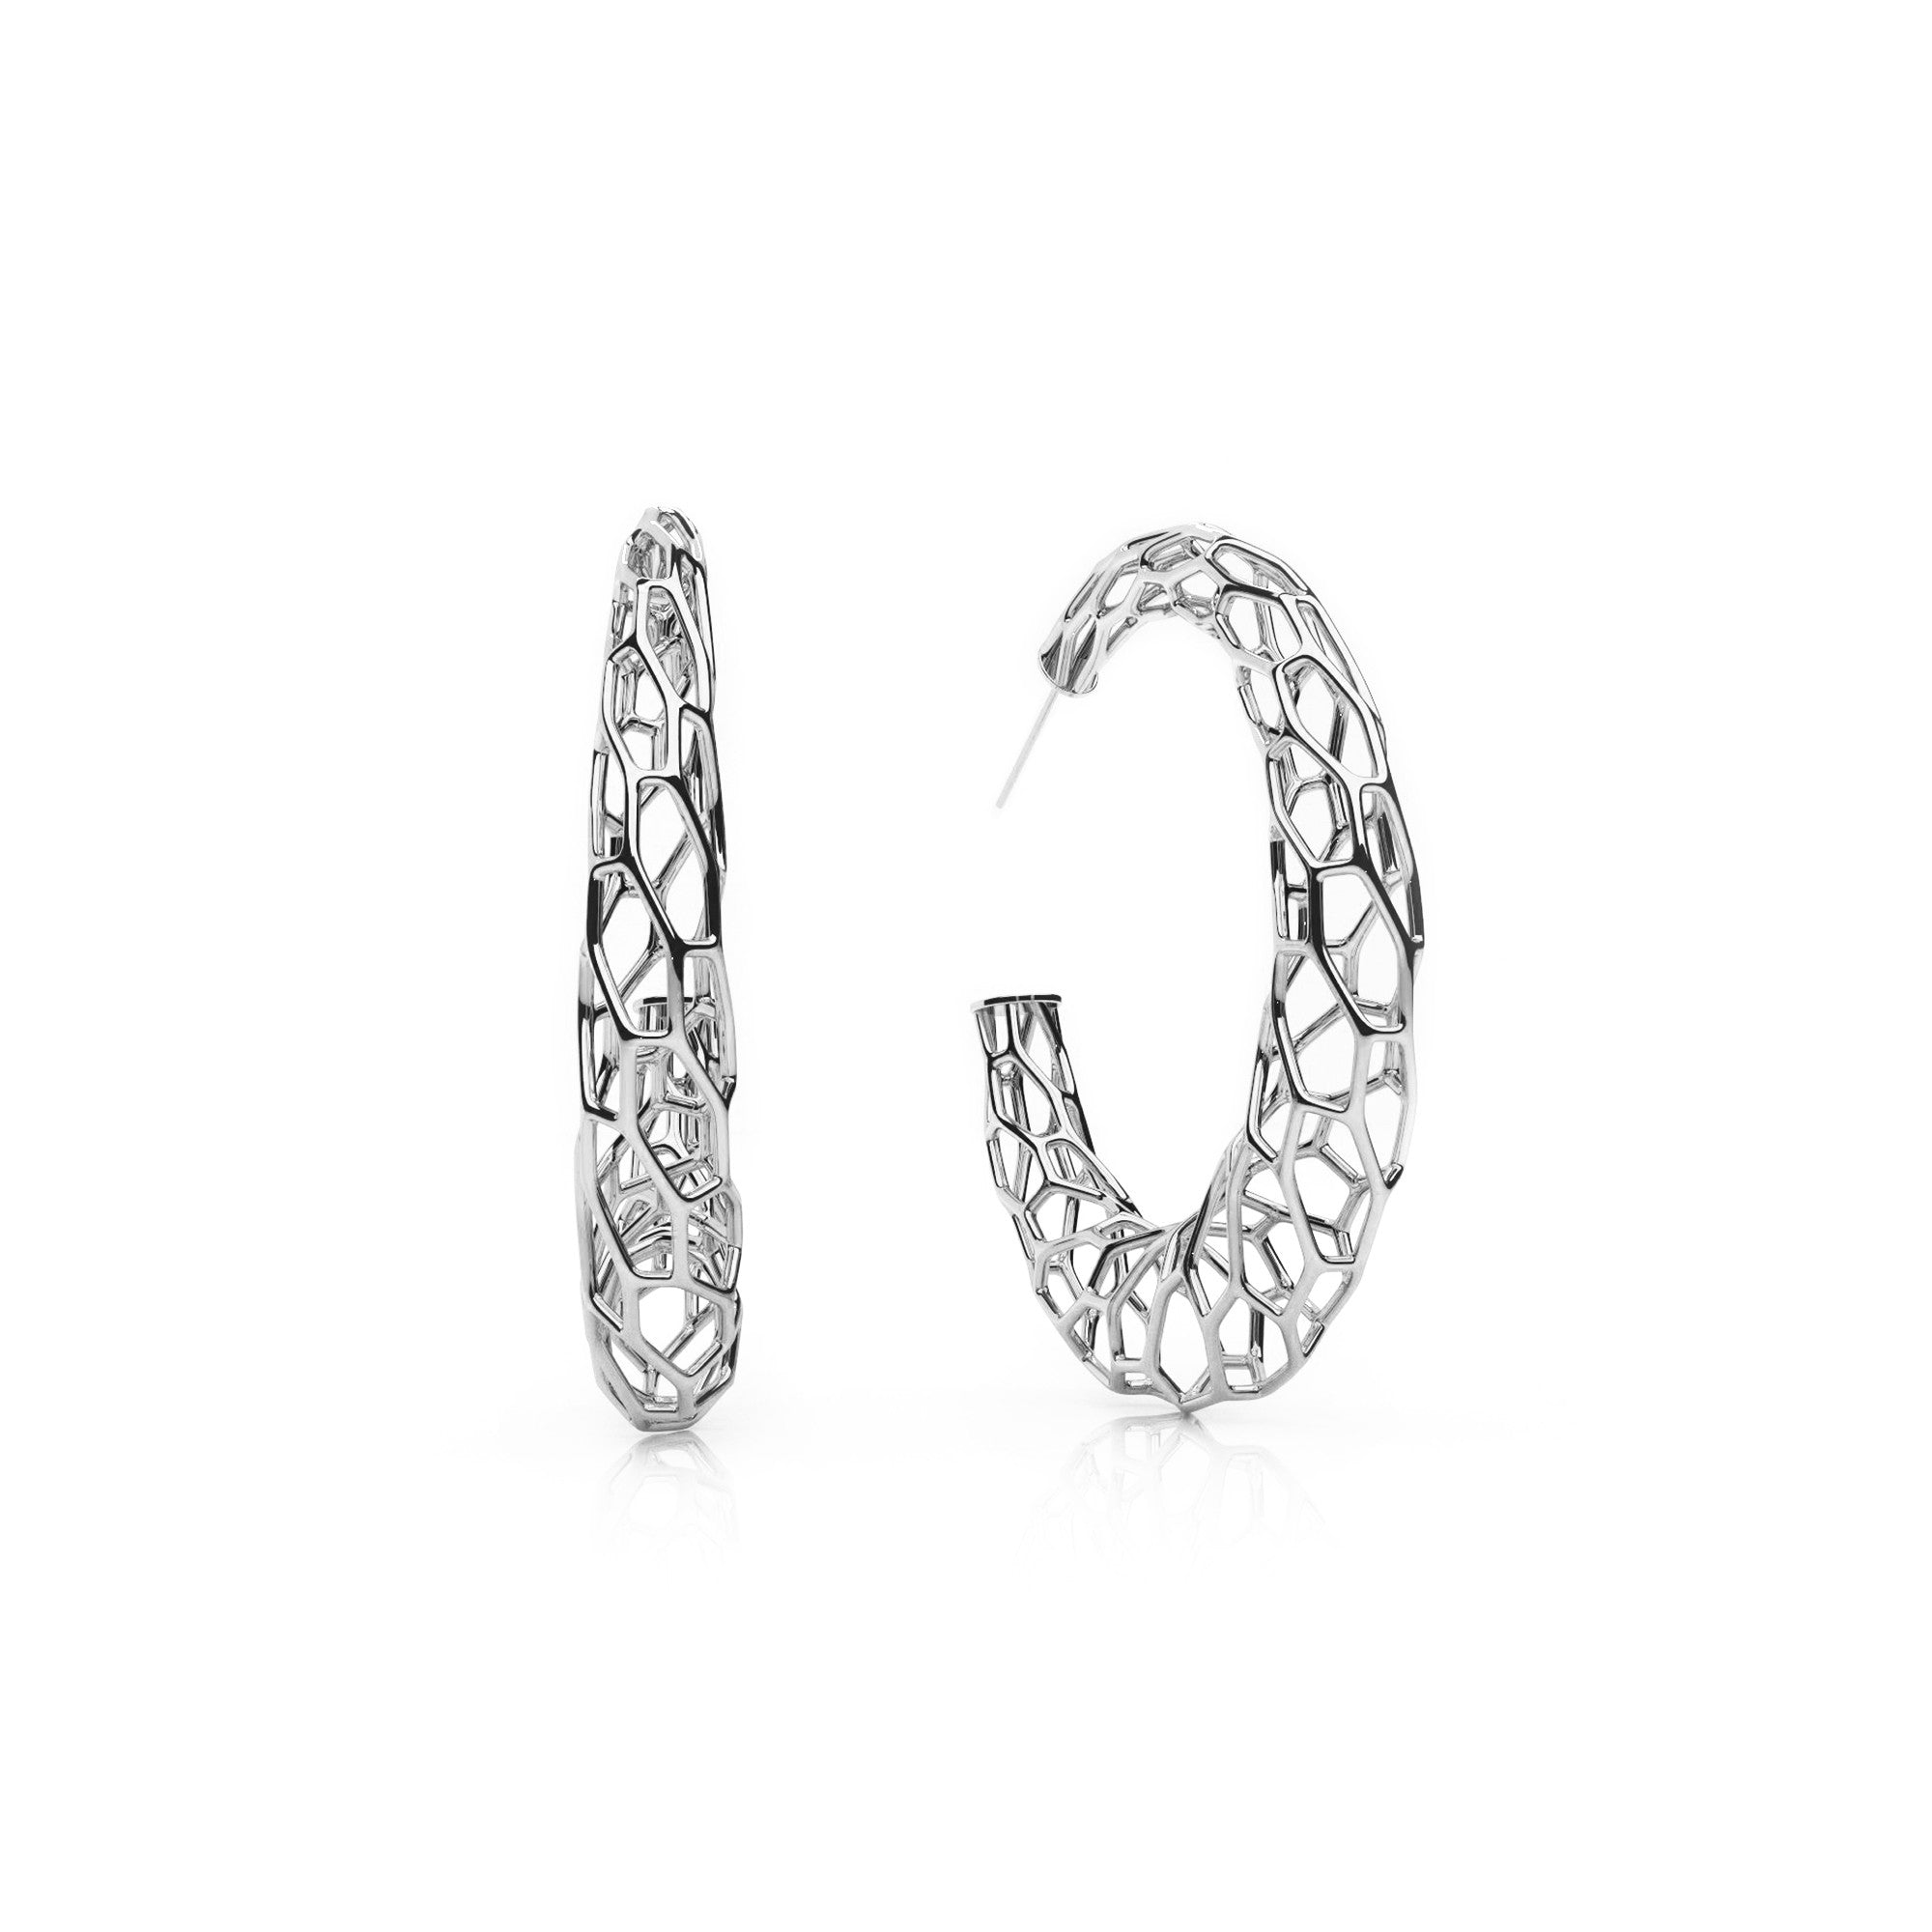 detail jewelry platinum earring tanishq earrings pave diamond designs mens silver product jewellery vogue